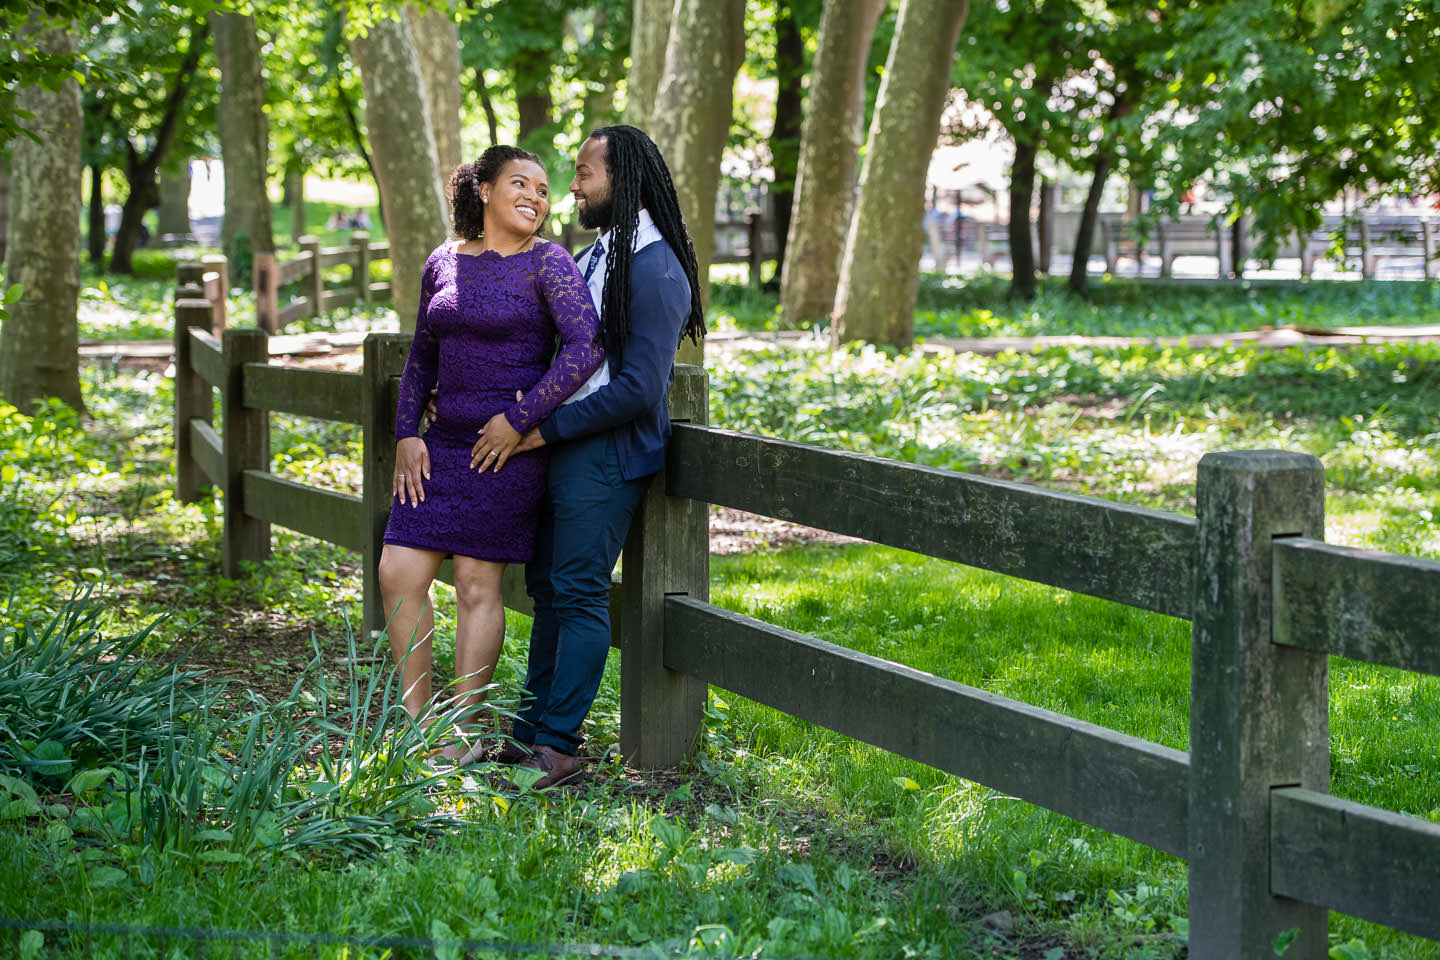 couple poses by fence in central park girl wears purple dress